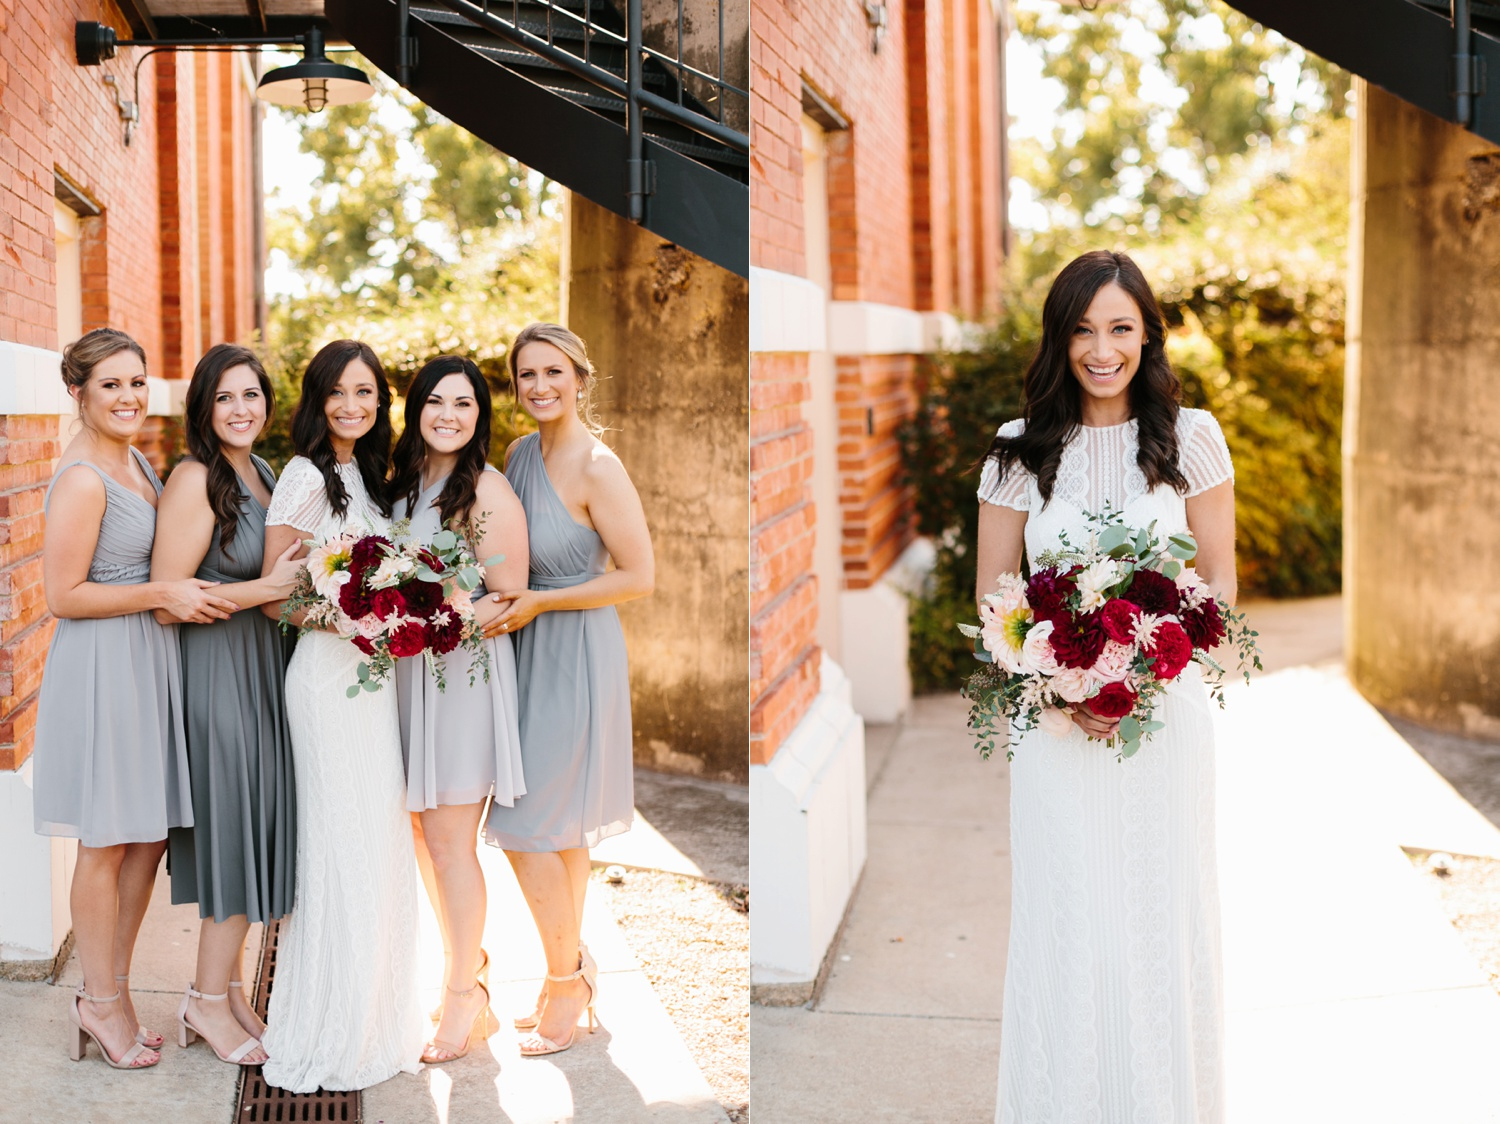 Kadee + Tyler | a raw, emotional wedding at the Filter Building on White Rock Lake in Dallas, TX by North Texas Wedding Photographer, Rachel Meagan Photography 099